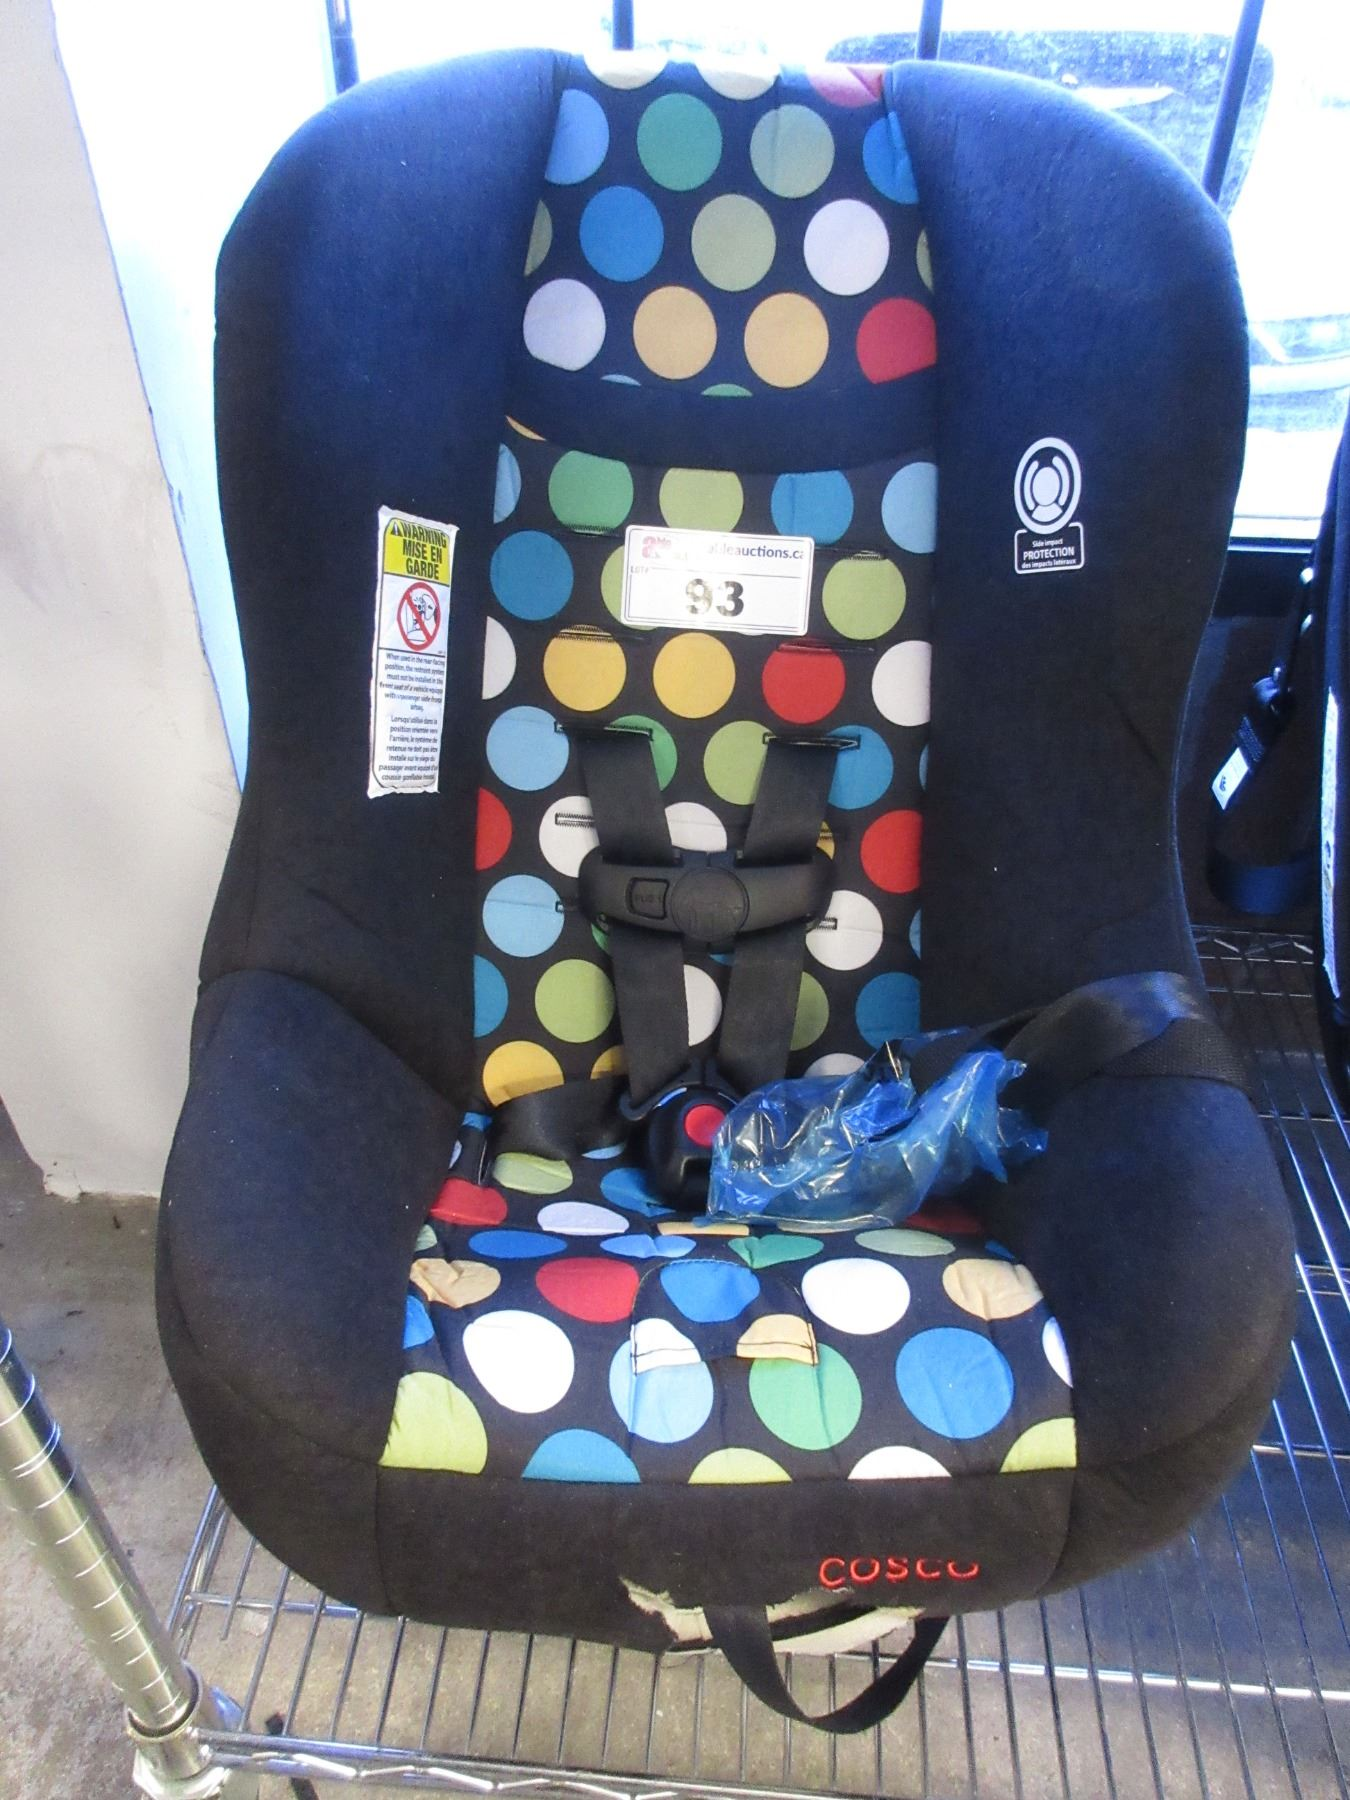 Image 1 COSCO BABY CAR SEAT COSMETIC DAMAGE